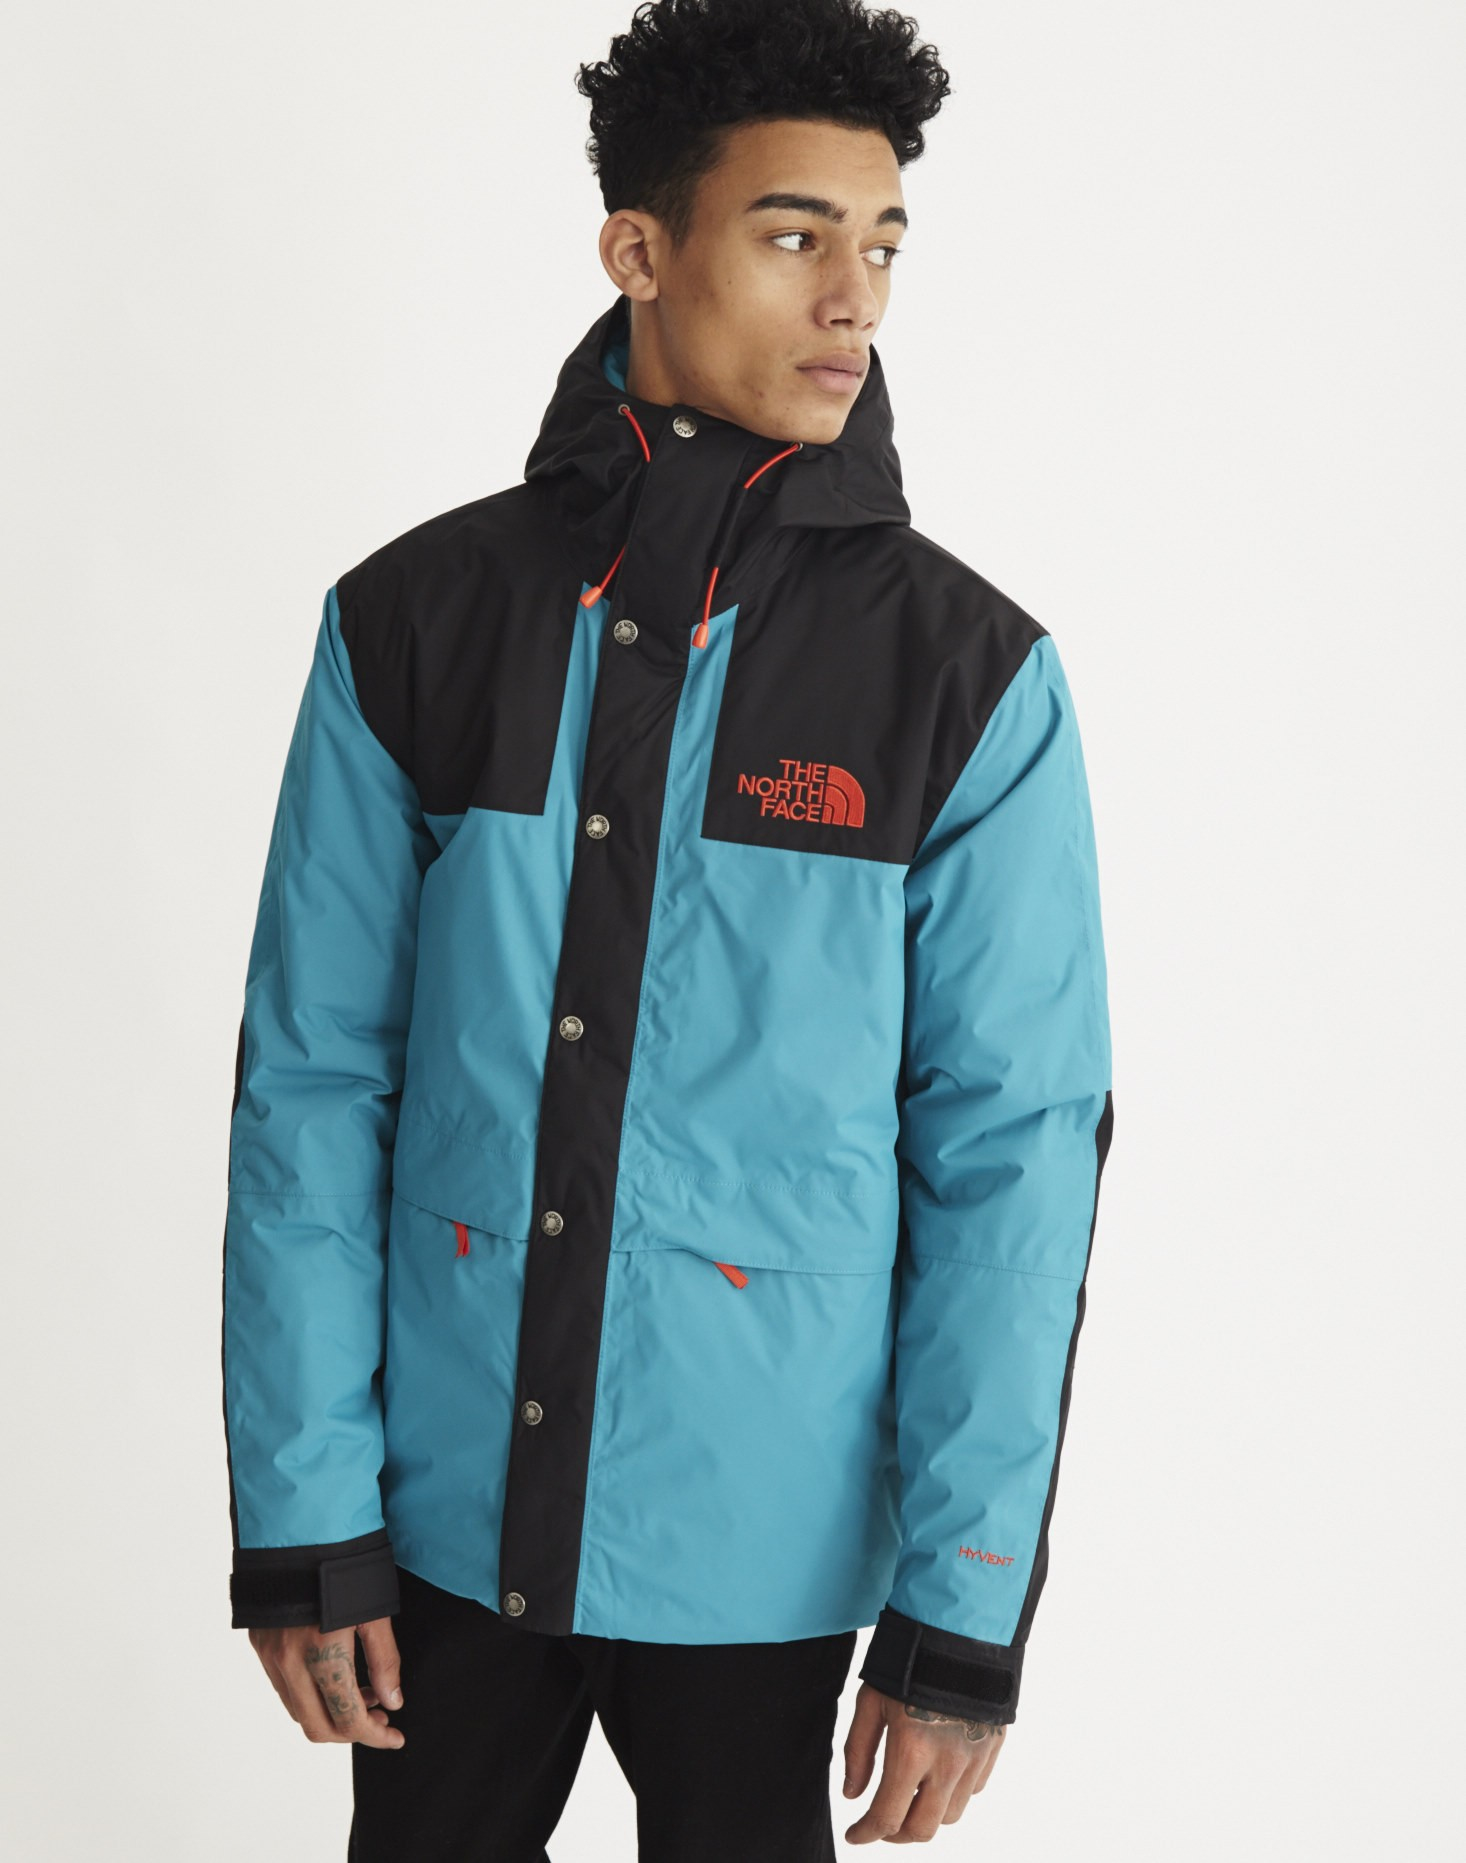 c80b1add6 france the north face 1985 rage insulated mountain jacket 0296c c6075